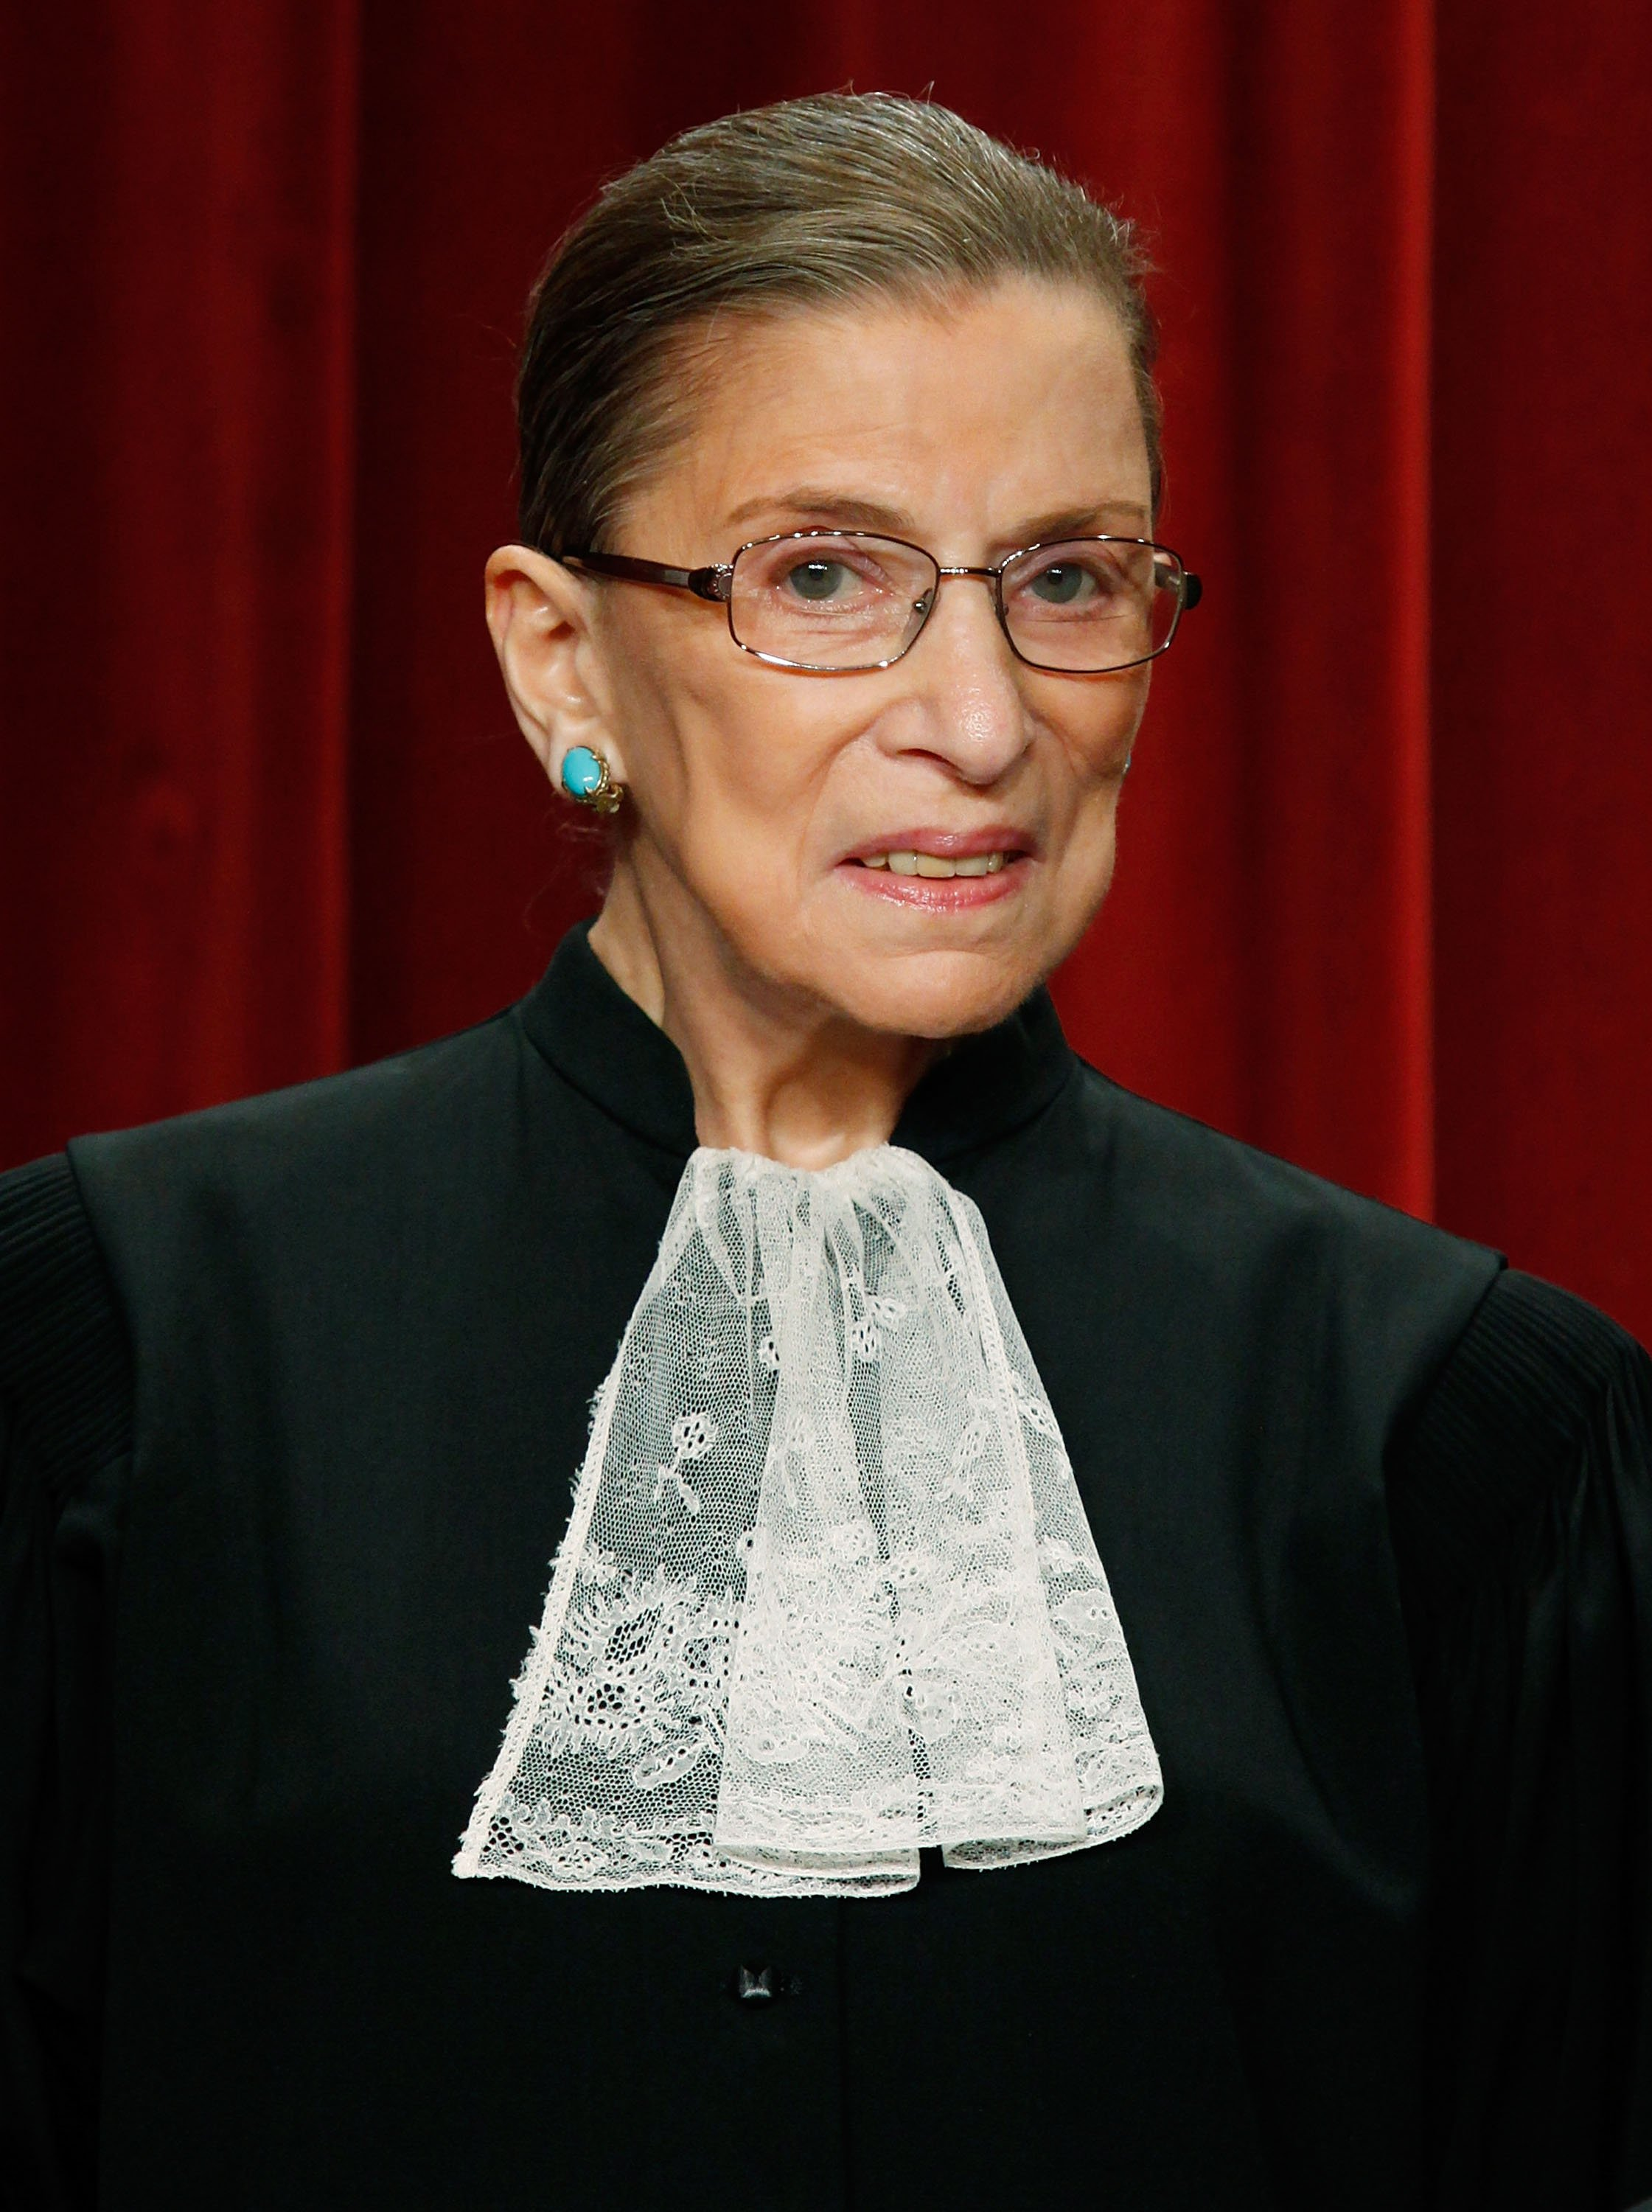 ustice Ruth Bader Ginsburg poses at the Supreme Court building on September 29, 2009, in Washington, DC. | Source: Getty Images.